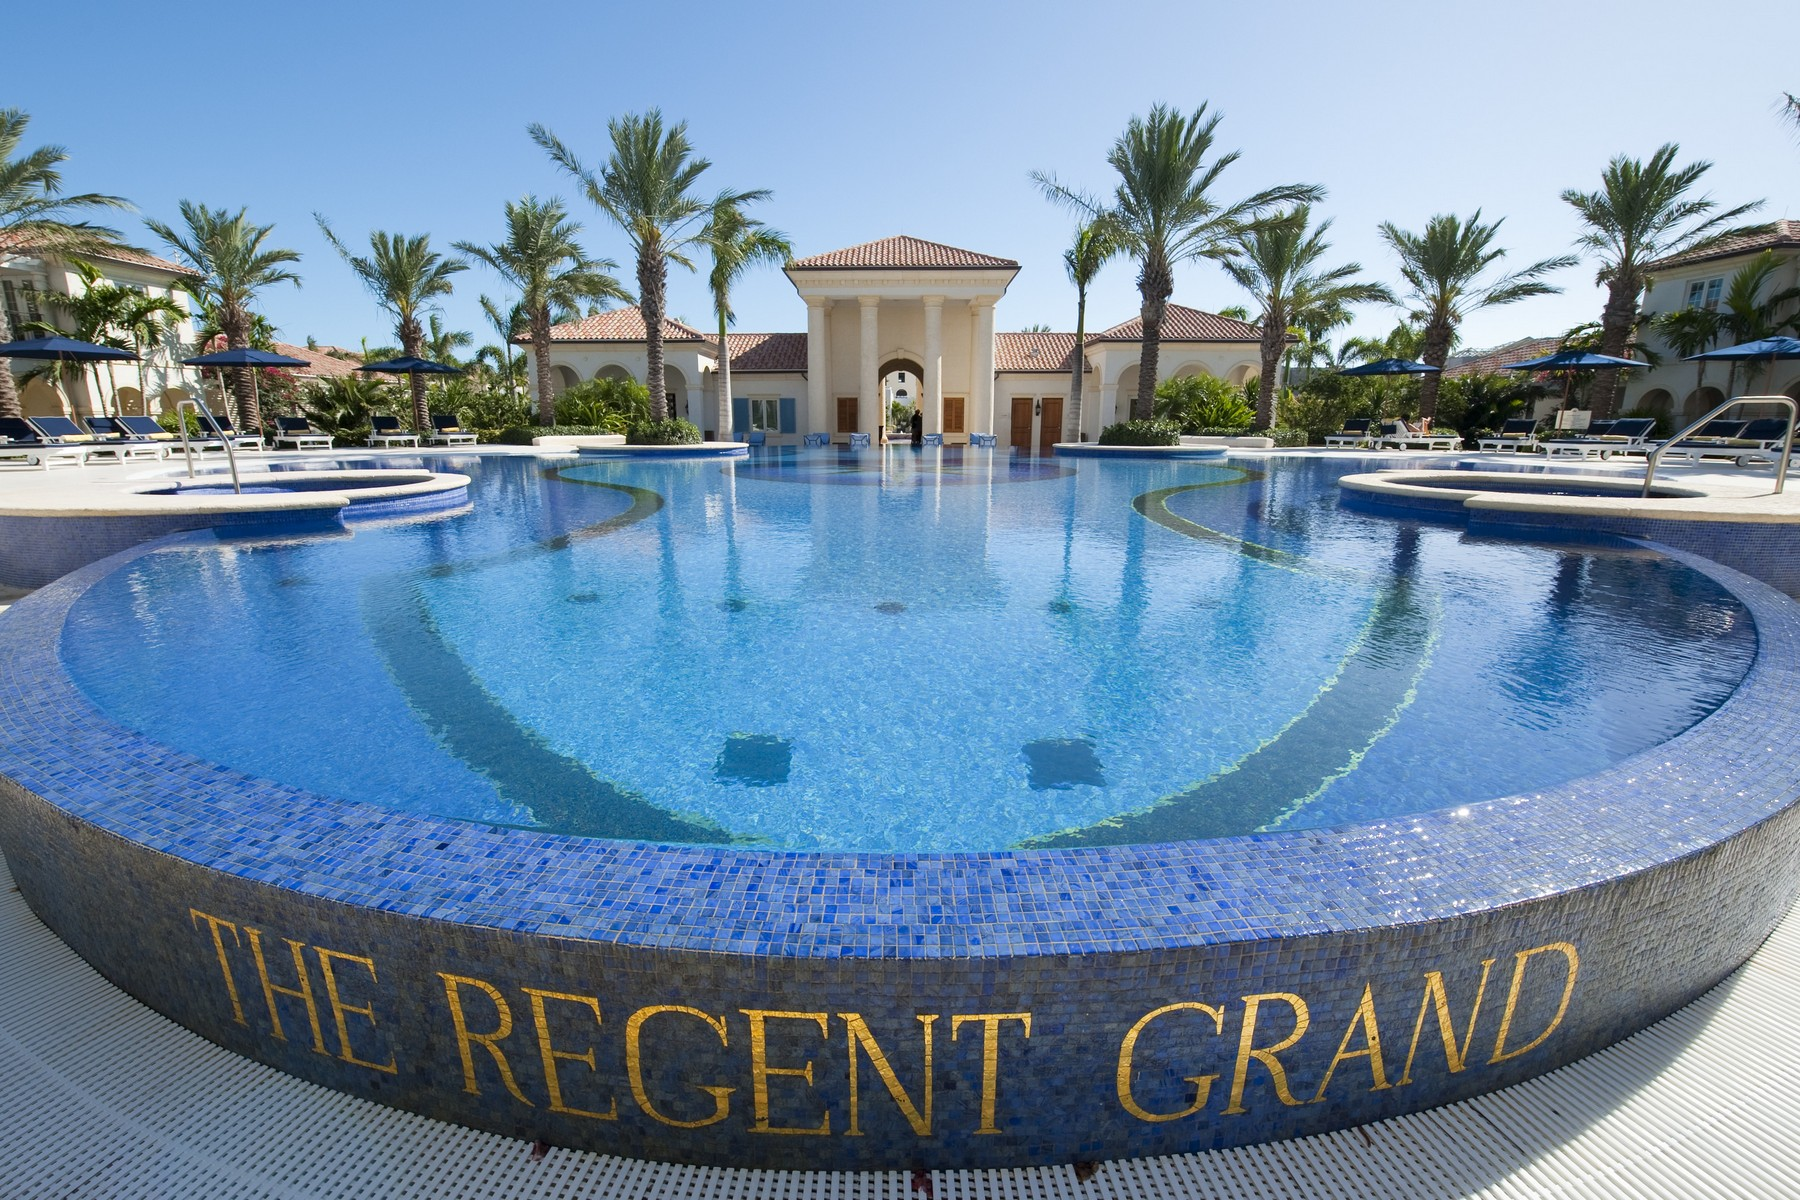 Additional photo for property listing at The Regent Grand - Suite 305 The Regent Grand, Grace Bay, Providenciales Islas Turcas Y Caicos